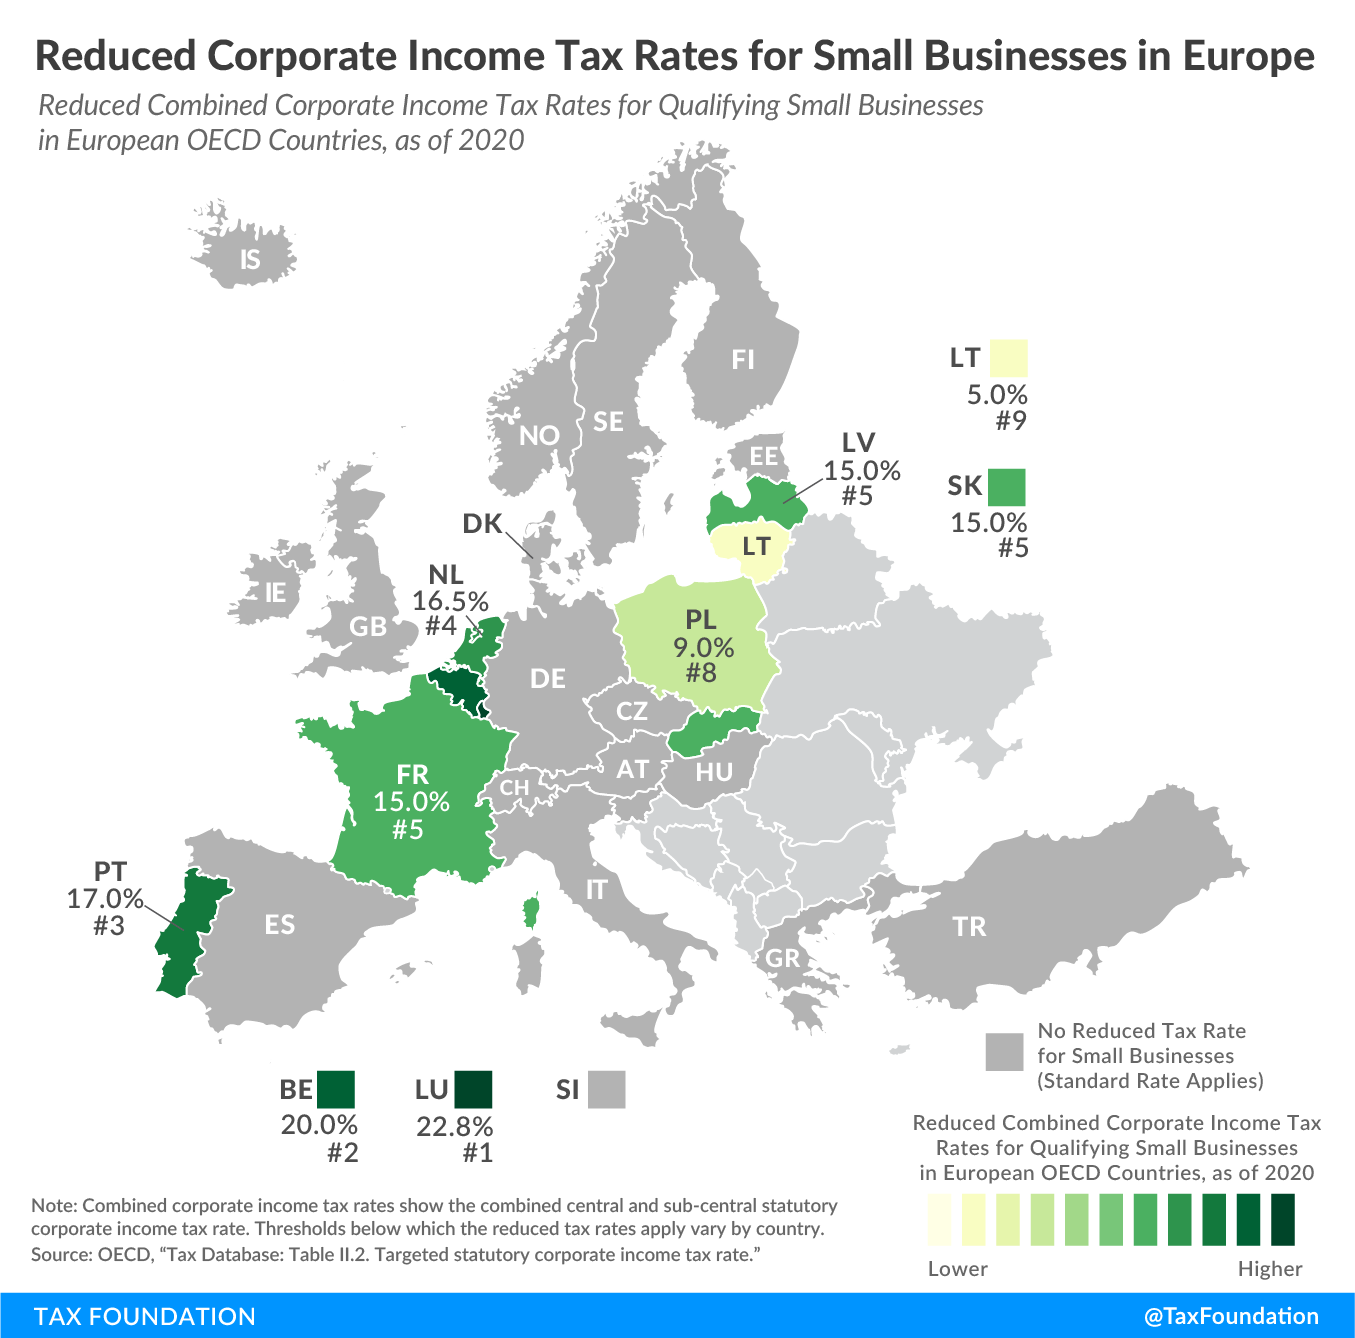 Reduced Corporate Income Tax Rates for Small Businesses in Europe